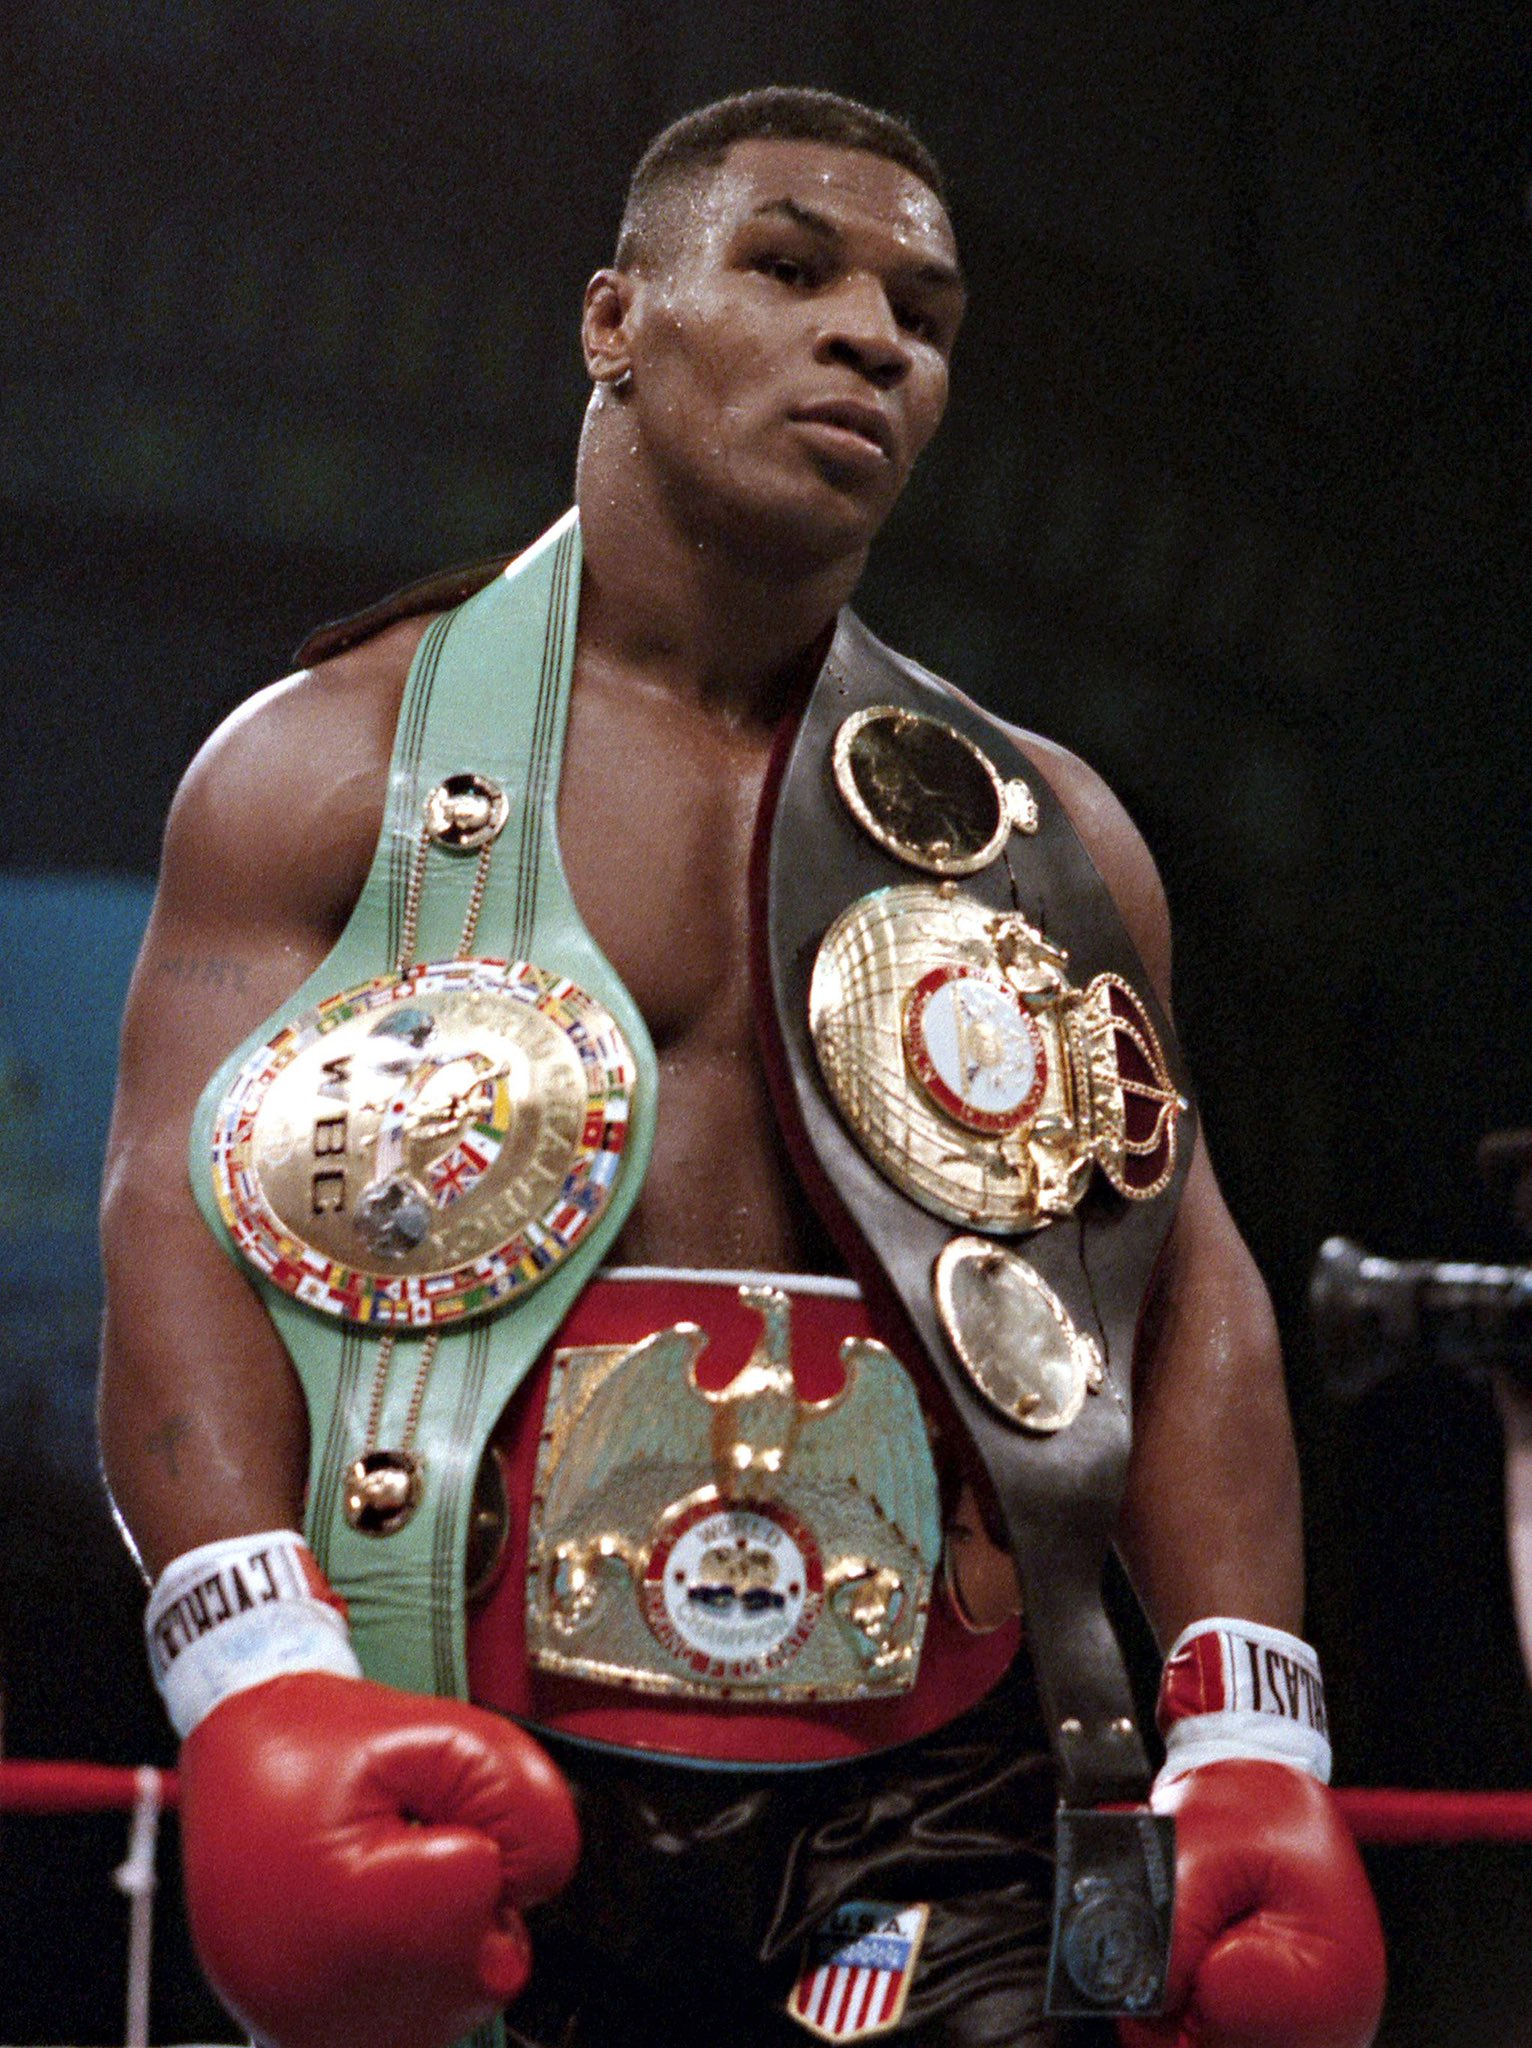 Happy Birthday to the baddest S.O.B on the planet -  Iron Mike Tyson who turns 54 today